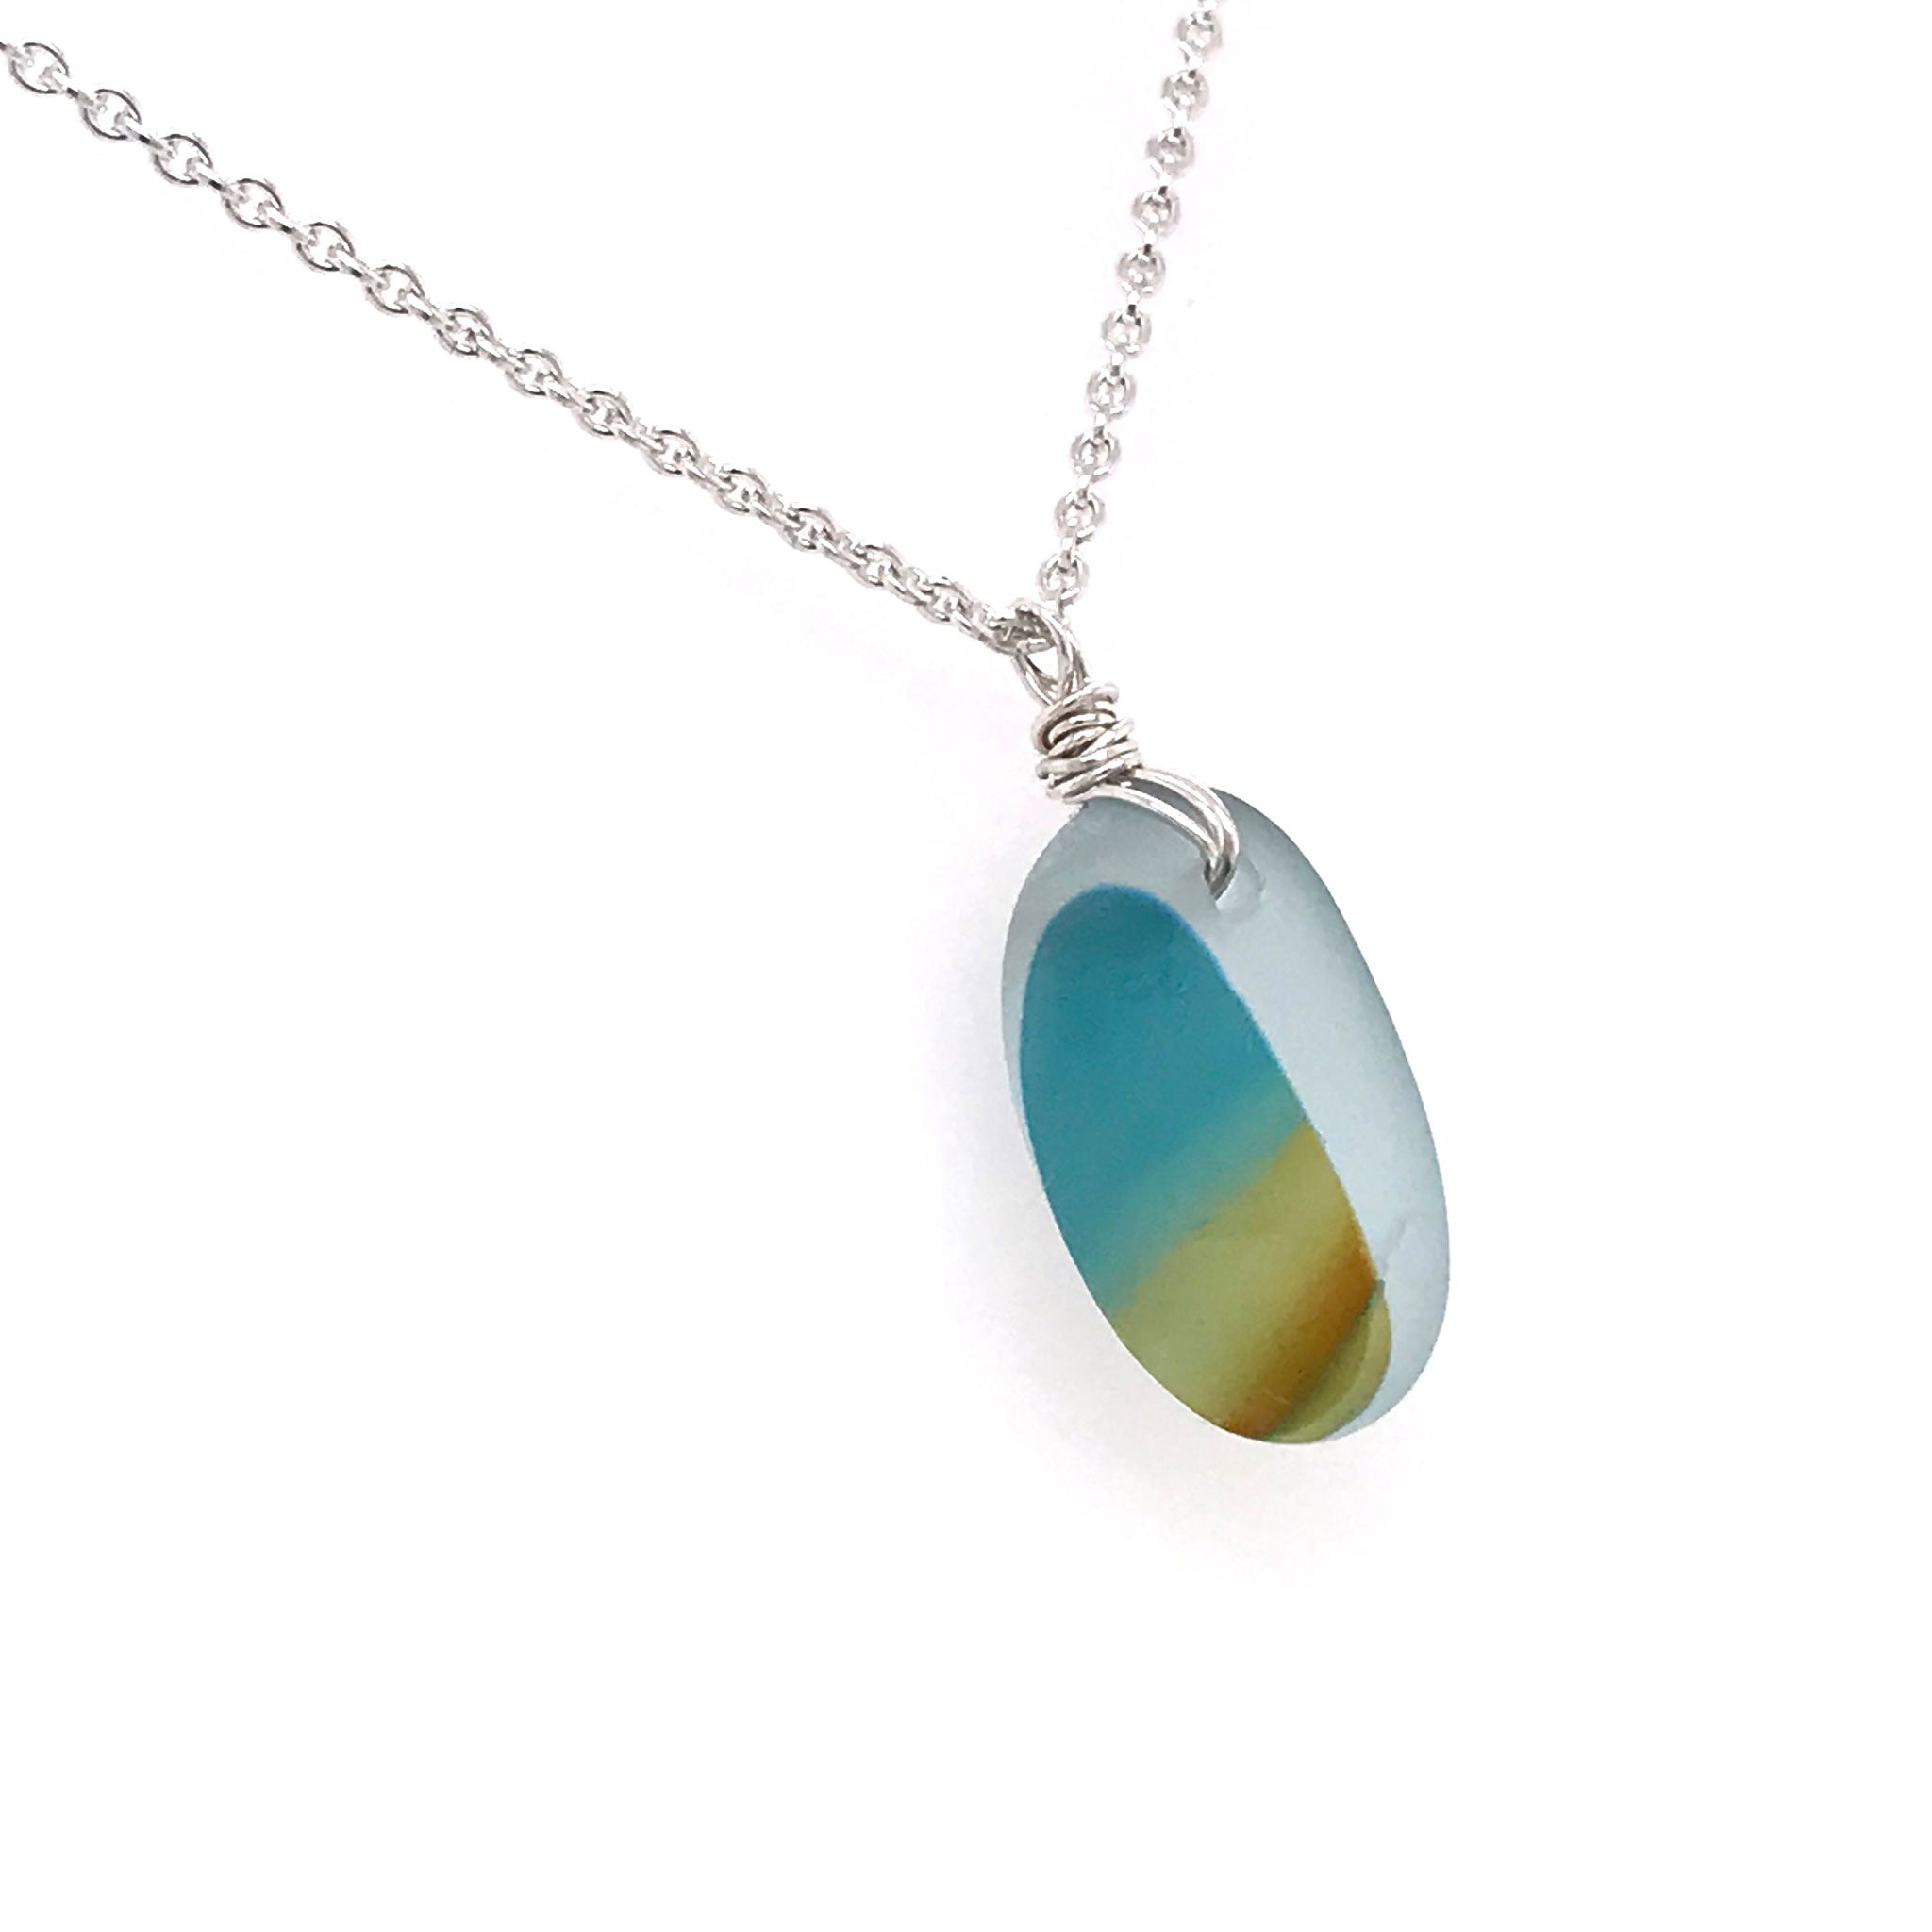 sterling silver necklace with teal and amber multi-coloured seaglass Kriket Broadhurst jewelry